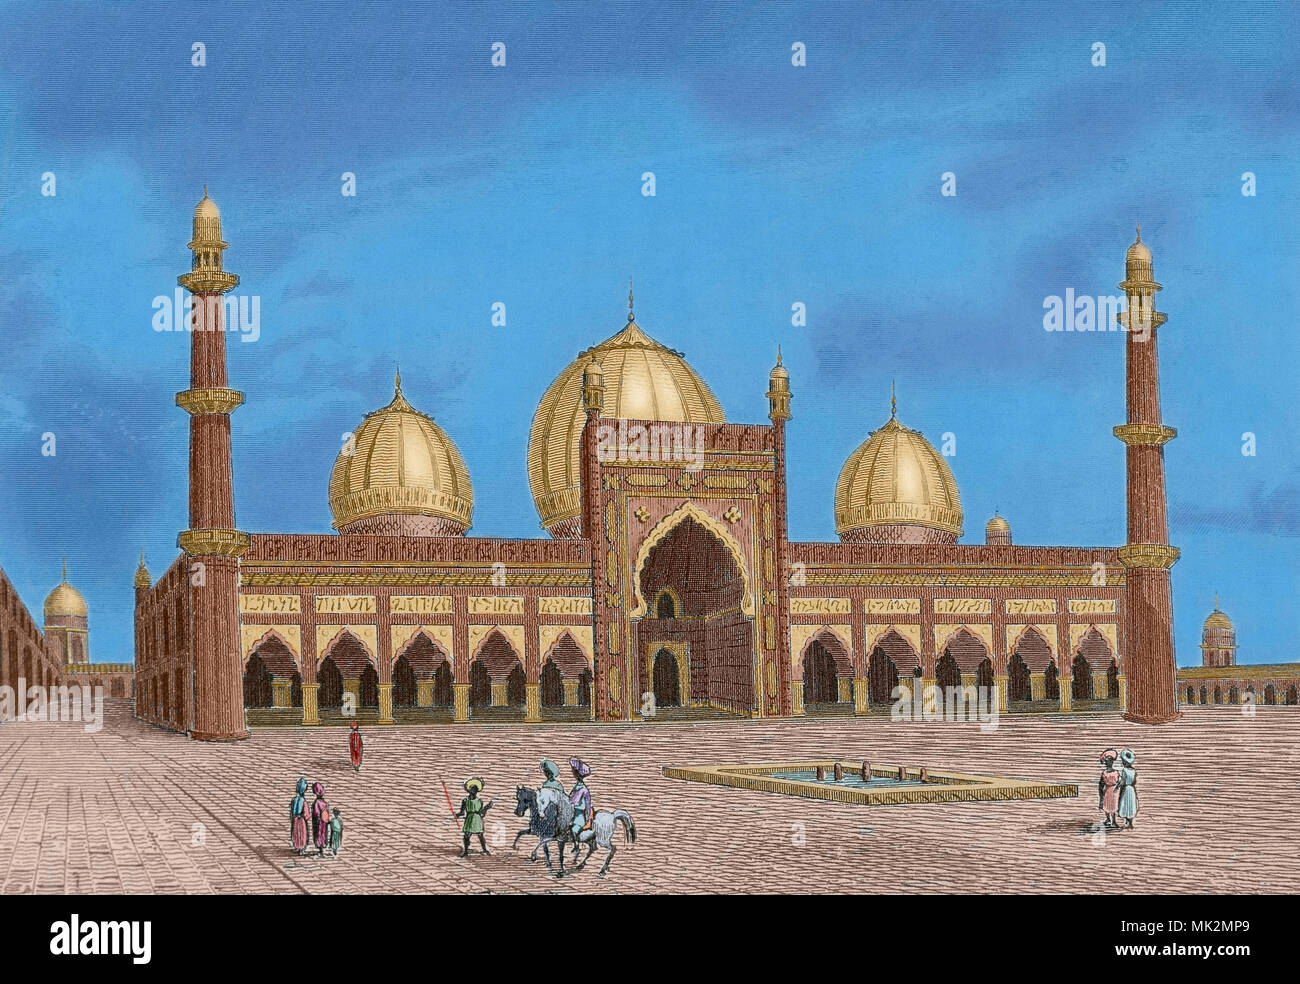 Delhi, India. The Masjid-i Jahan-Numa, known as the Jama Masjid. It was built by Mughal emperor Shah Jahan between 1650 and 1656. Engraving by Lemaitre, from Panorama Universal, India, 1845. Later colouration. - Stock Image